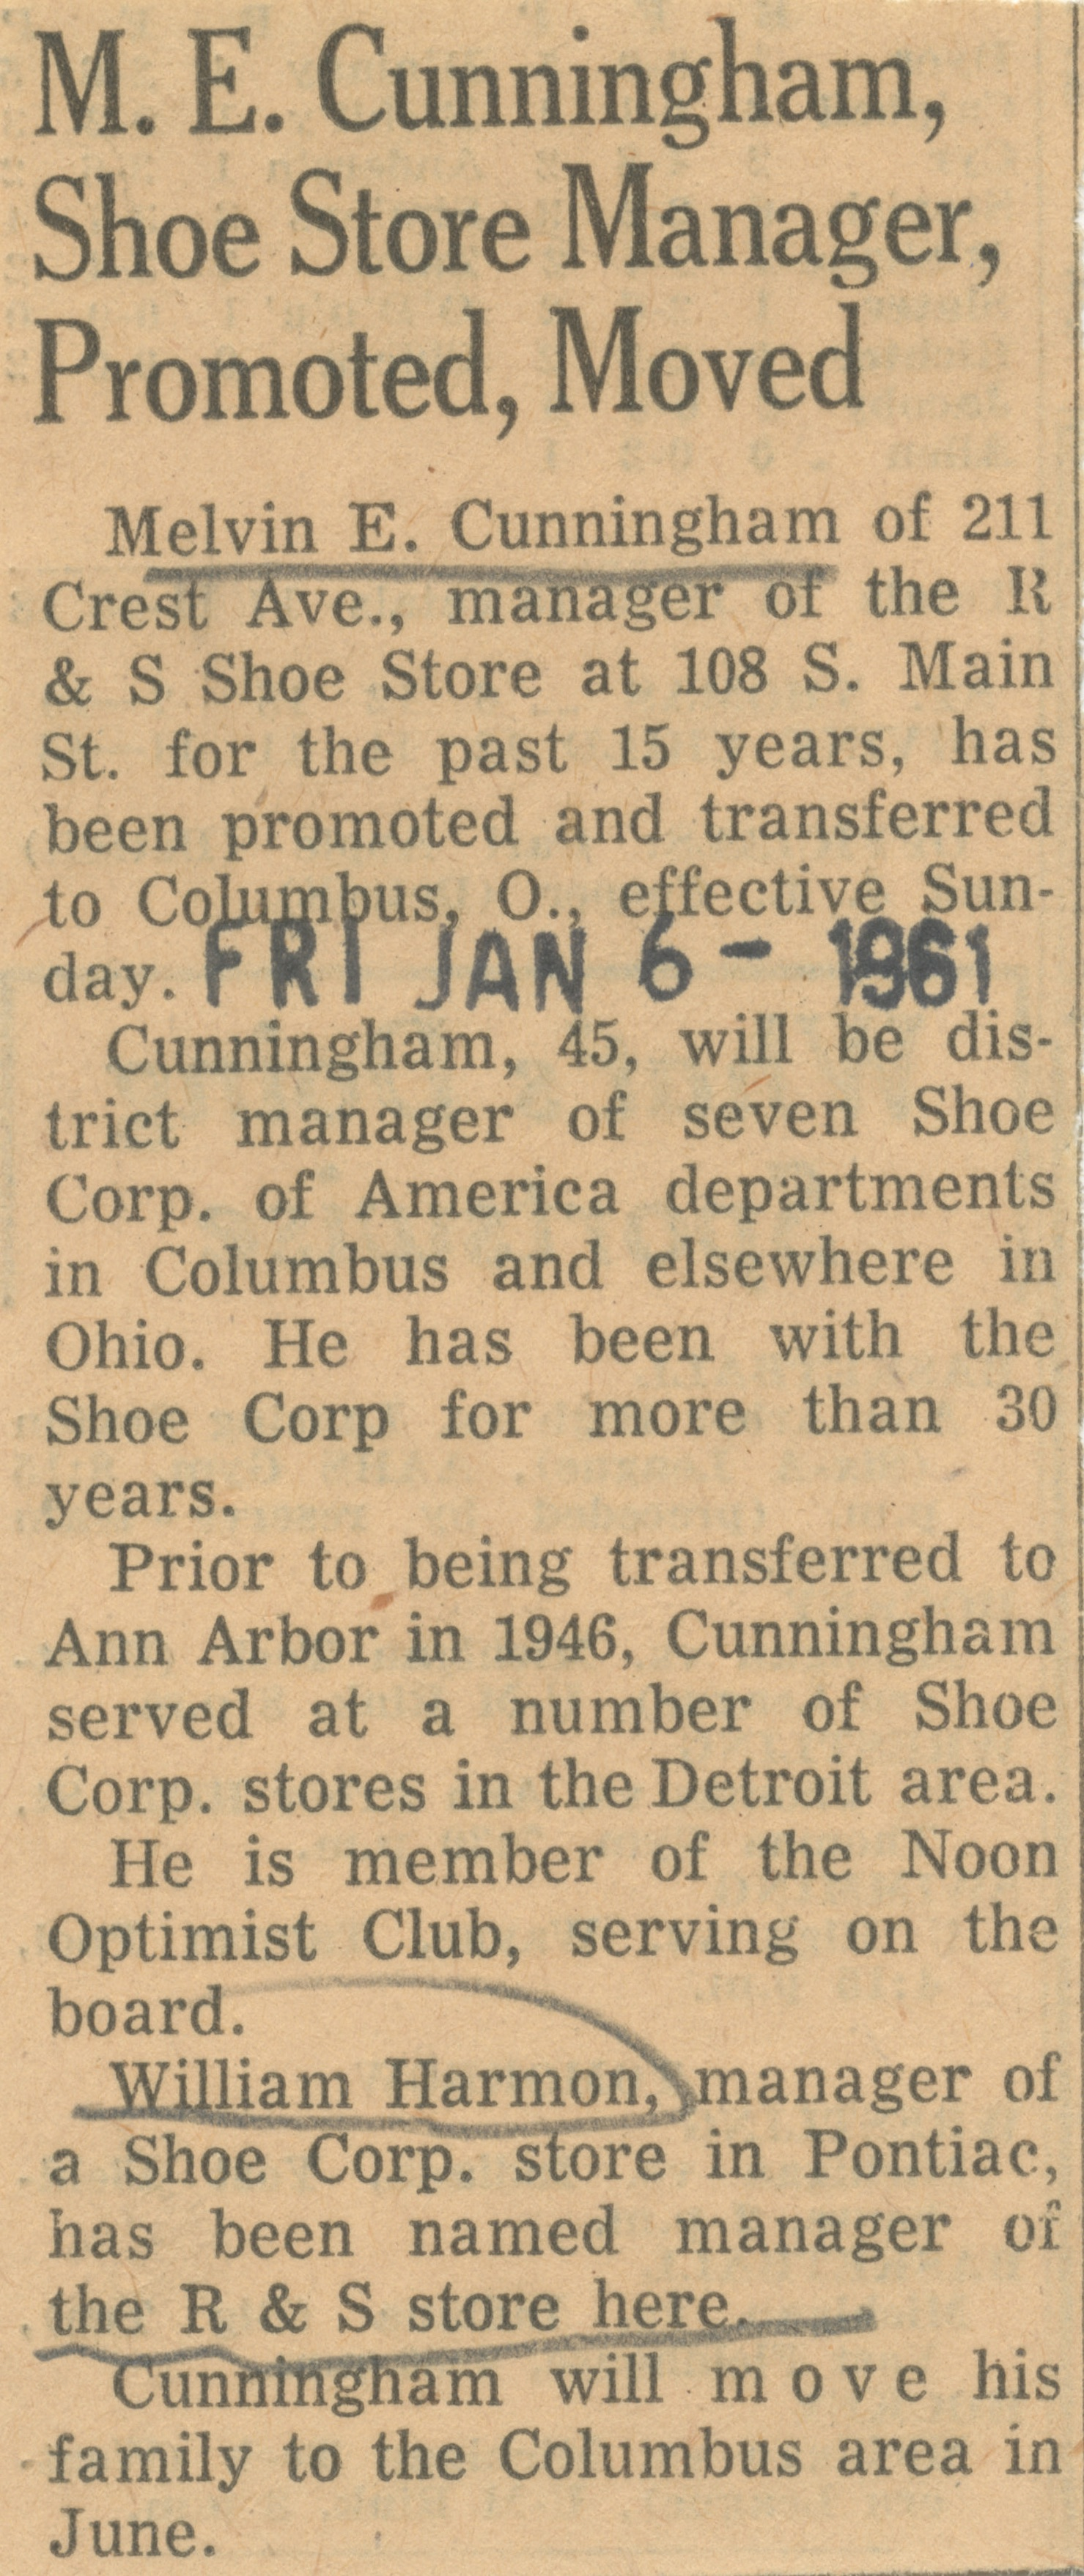 M. E. Cunningham, Shoe Store Manager, Promoted, Moved image